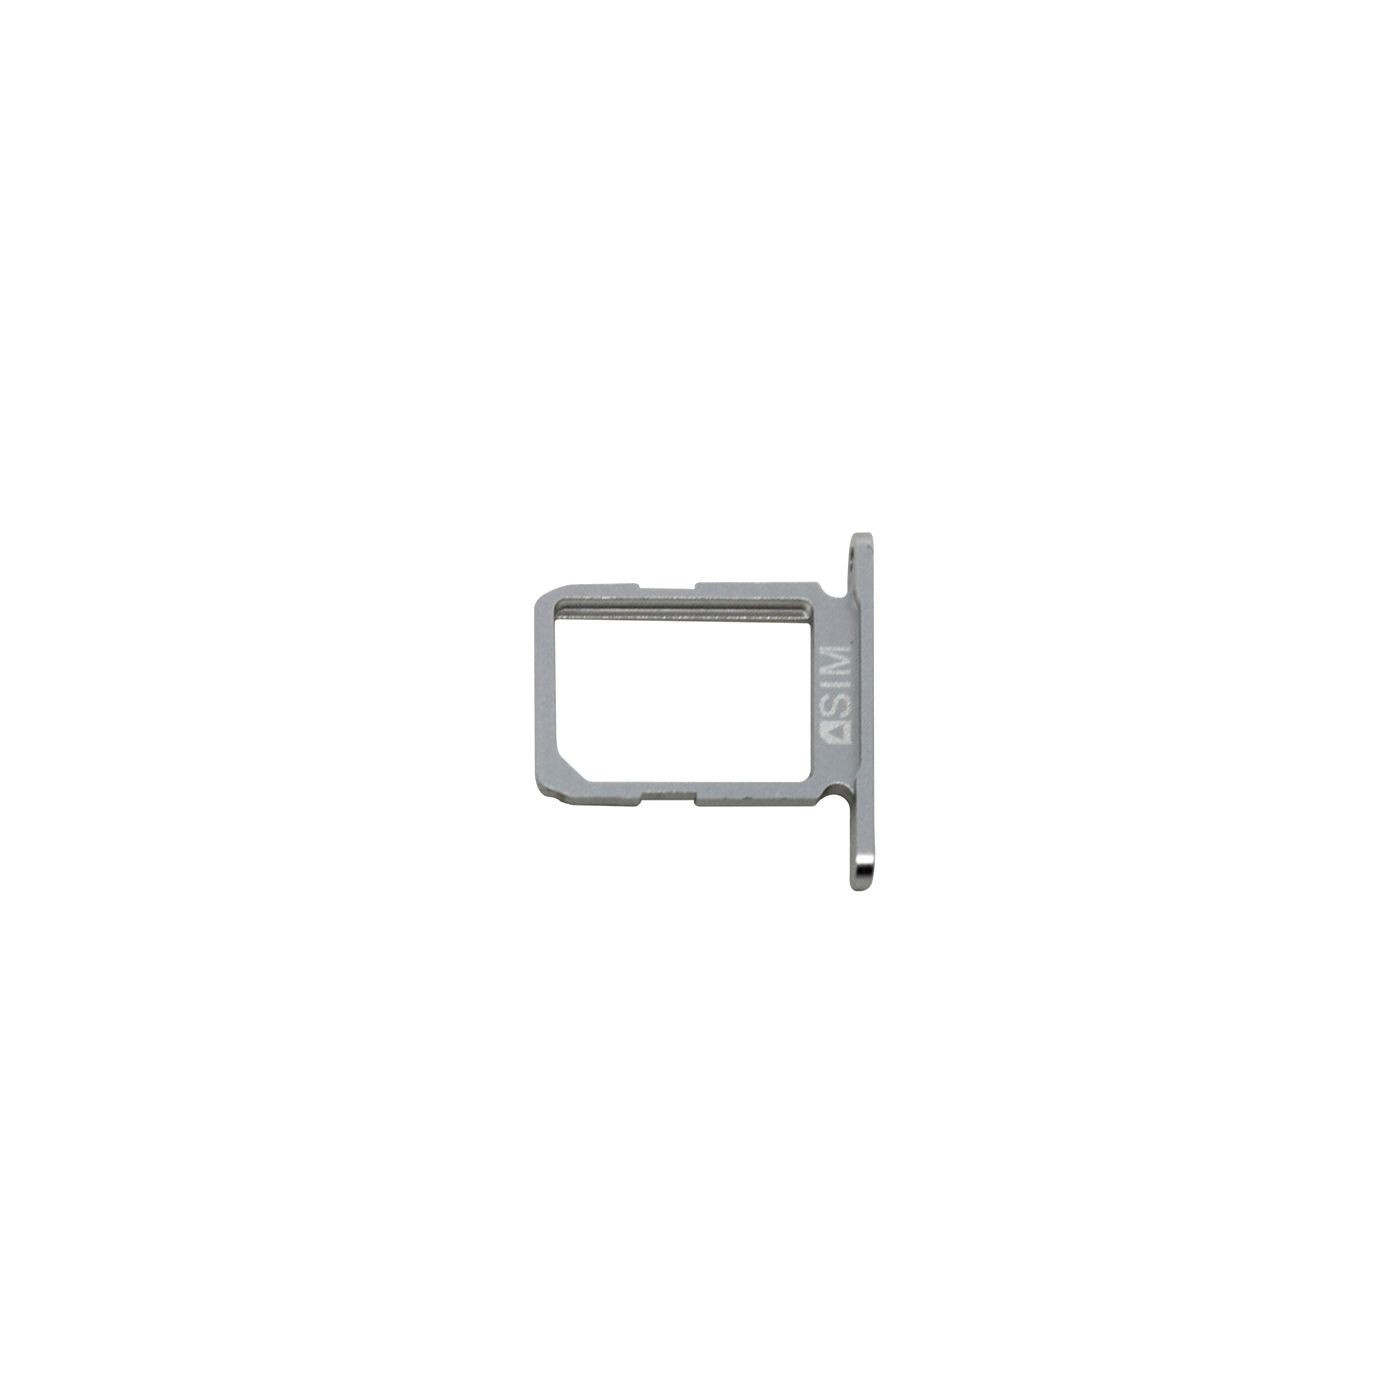 SUPPORT DE CARTE SIM pour SAMSUNG GALAXY S6 SM-G920F SPARE GREY DARK